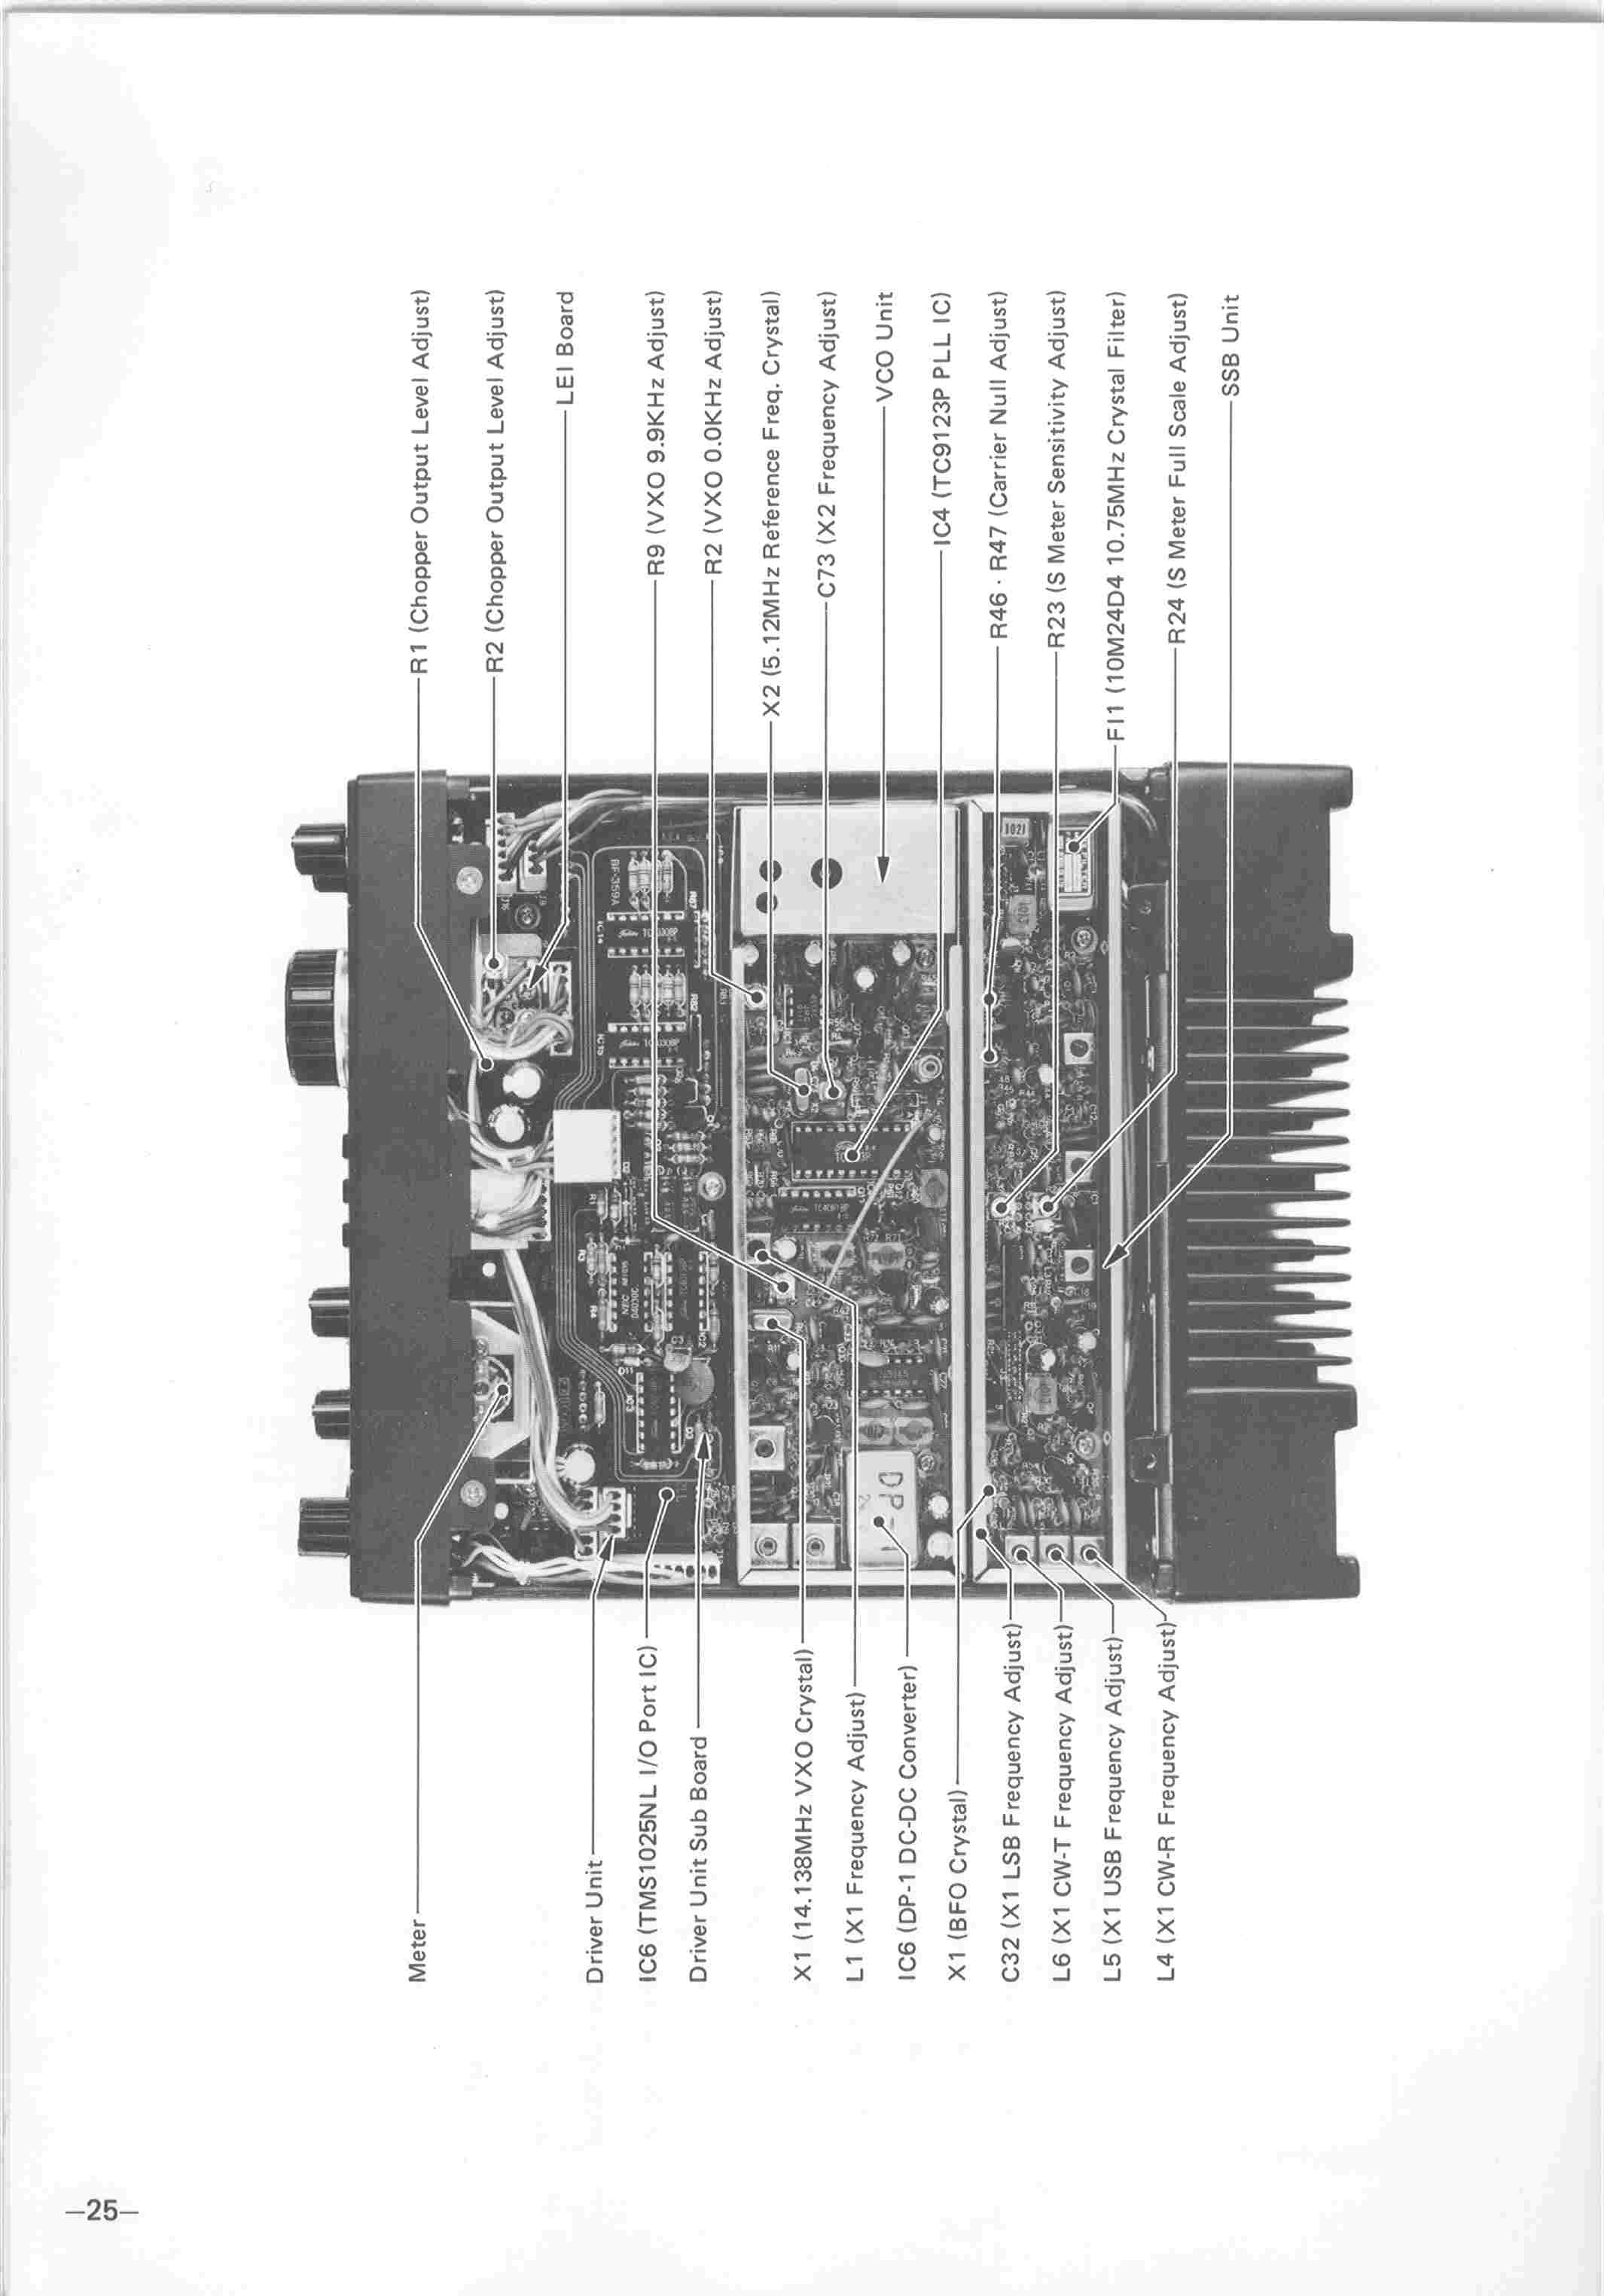 Ic 260 Owner S Manual